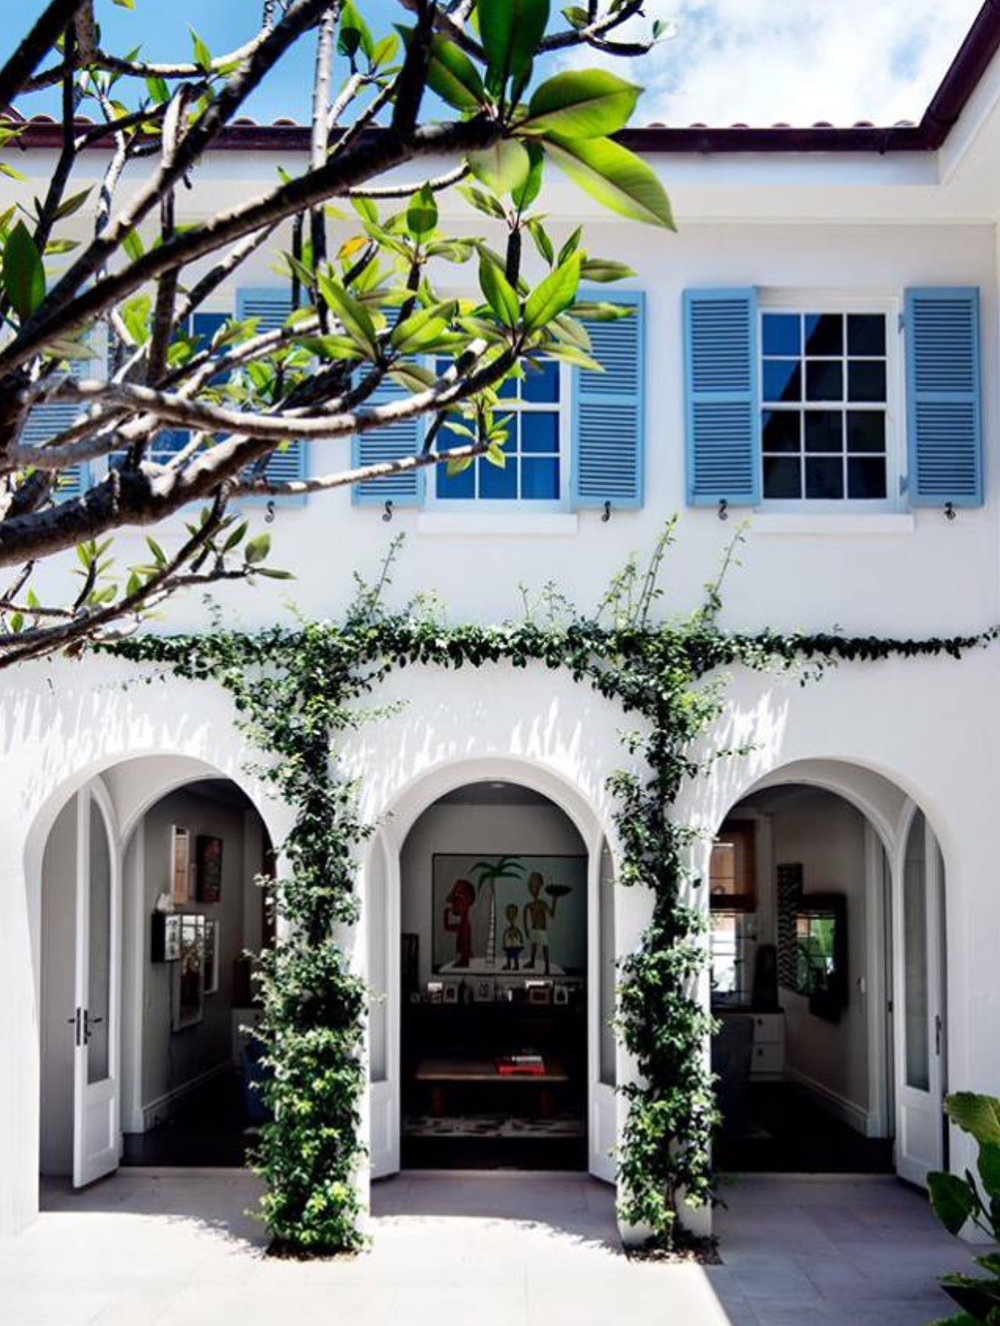 Greenery up the walls, curves in the architecture, a white exterior.